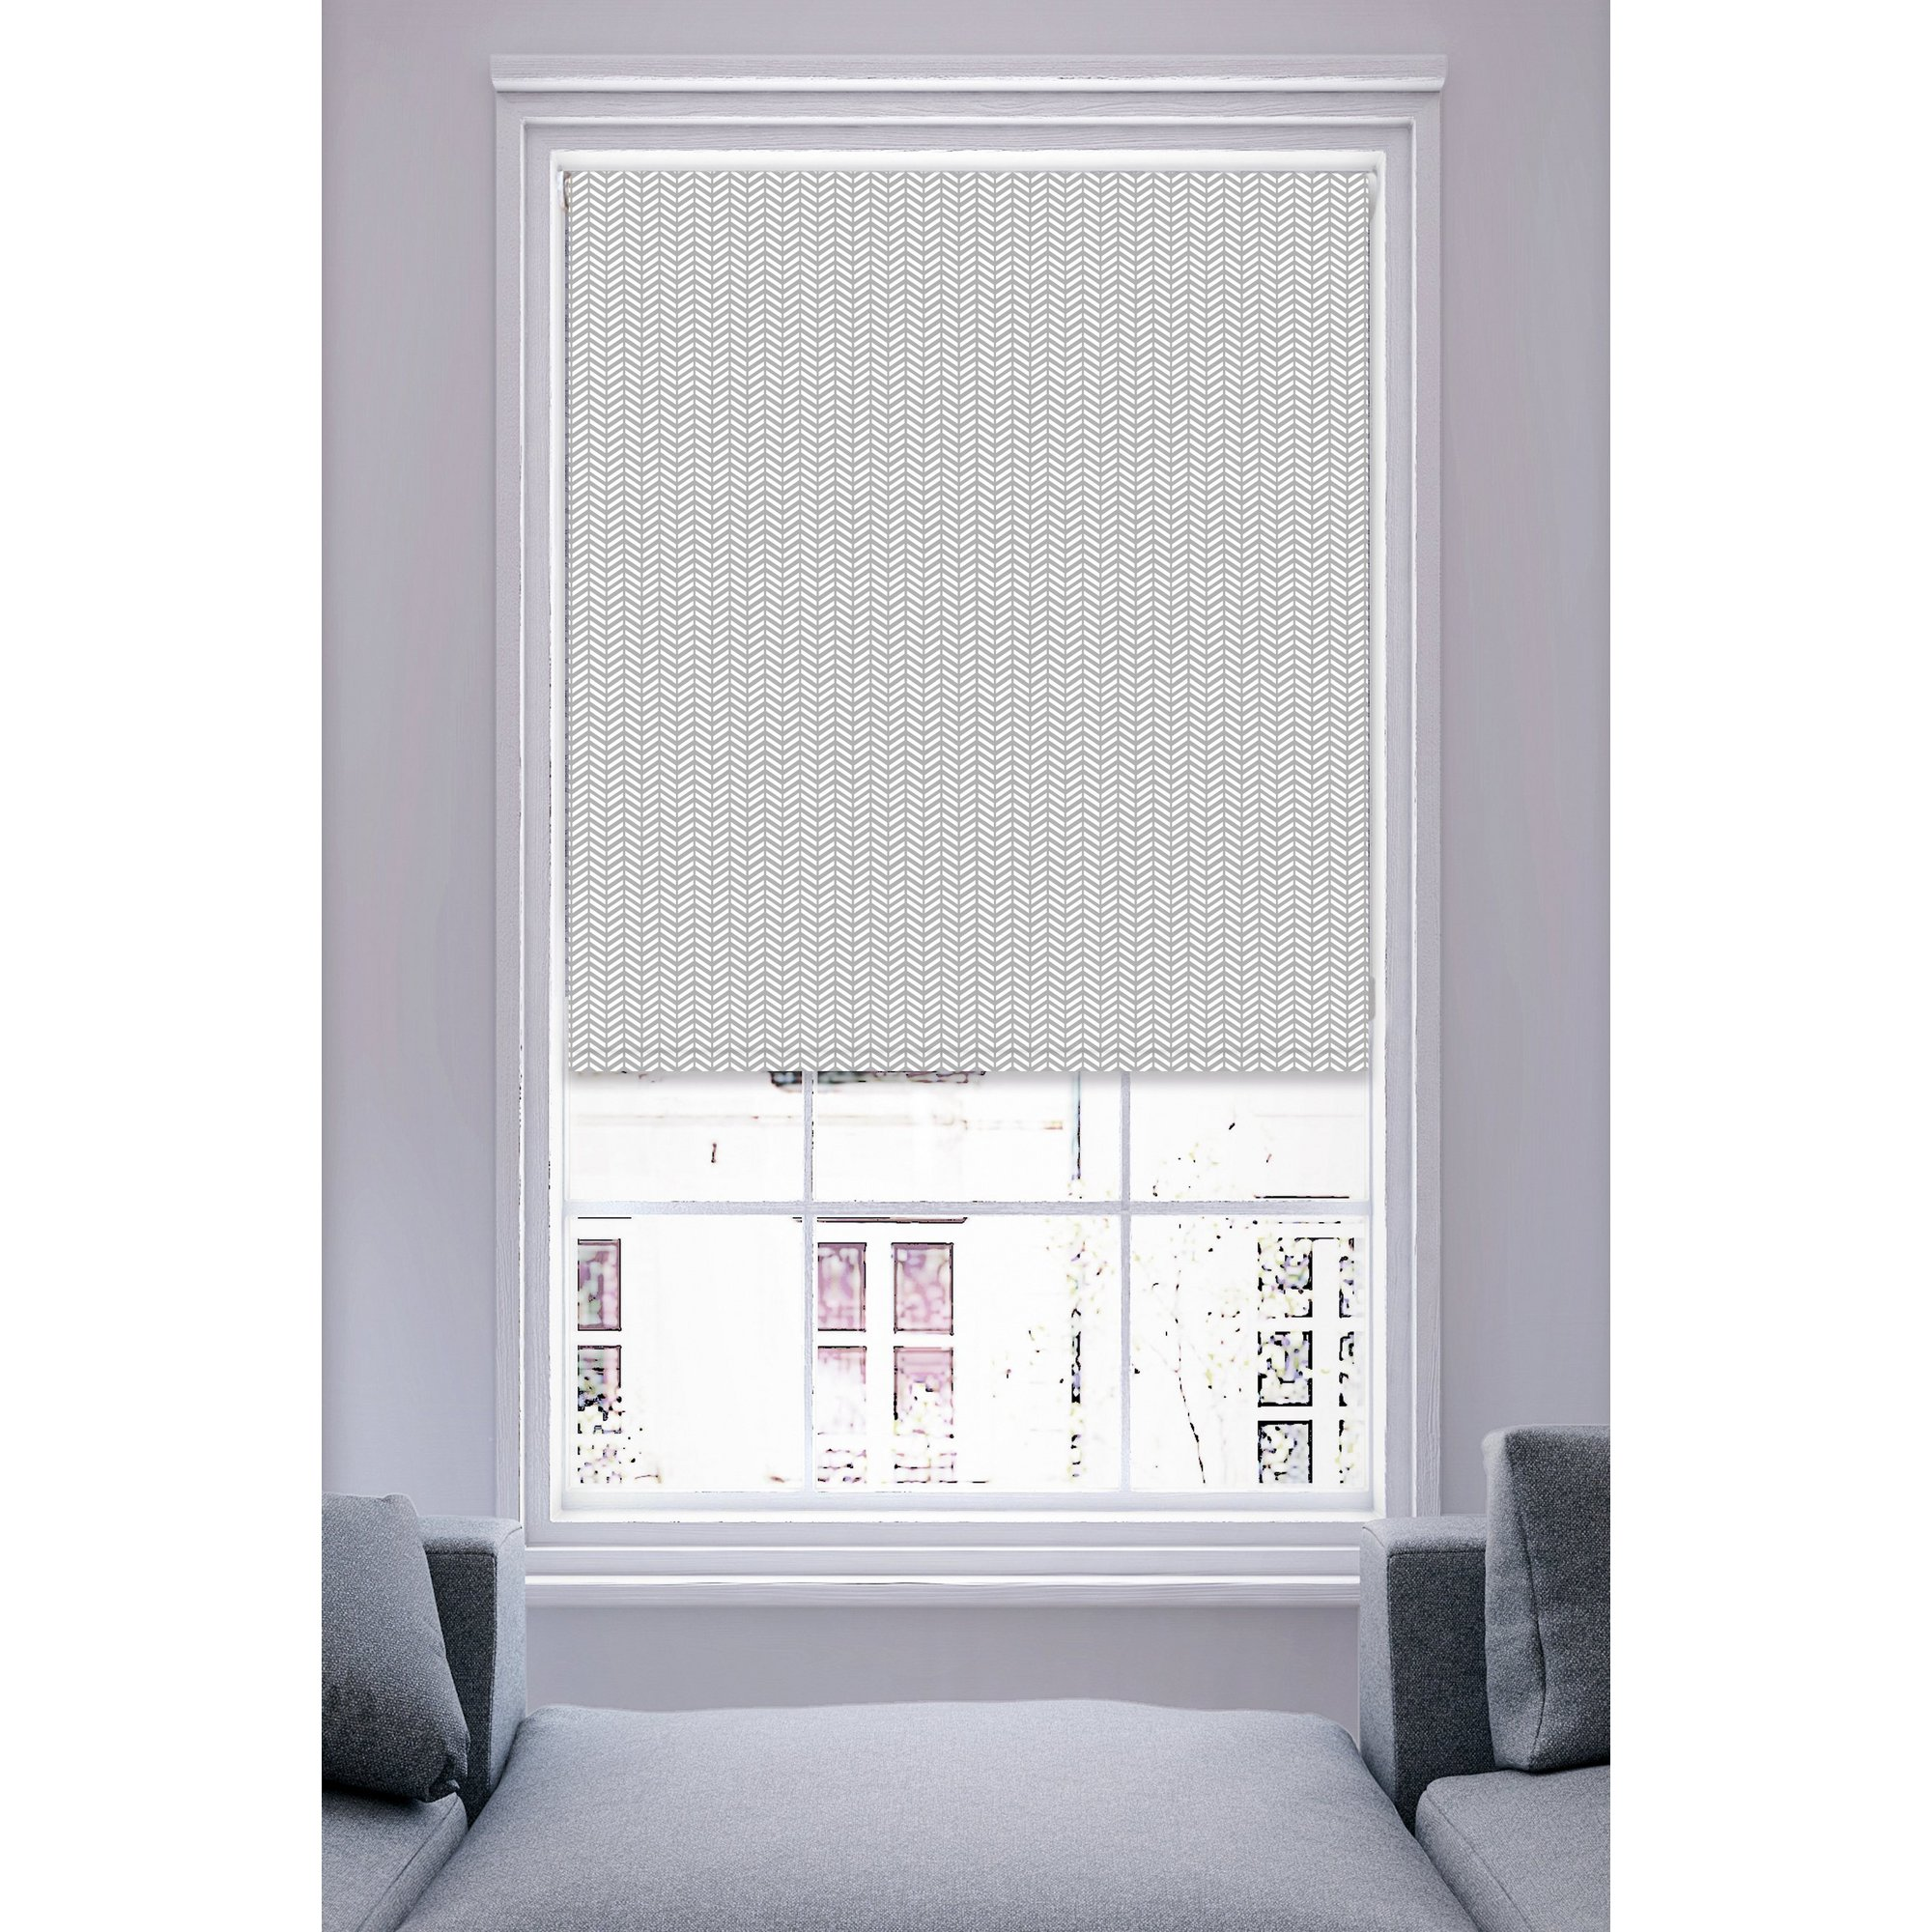 Image of Chevron Printed Roller Blind